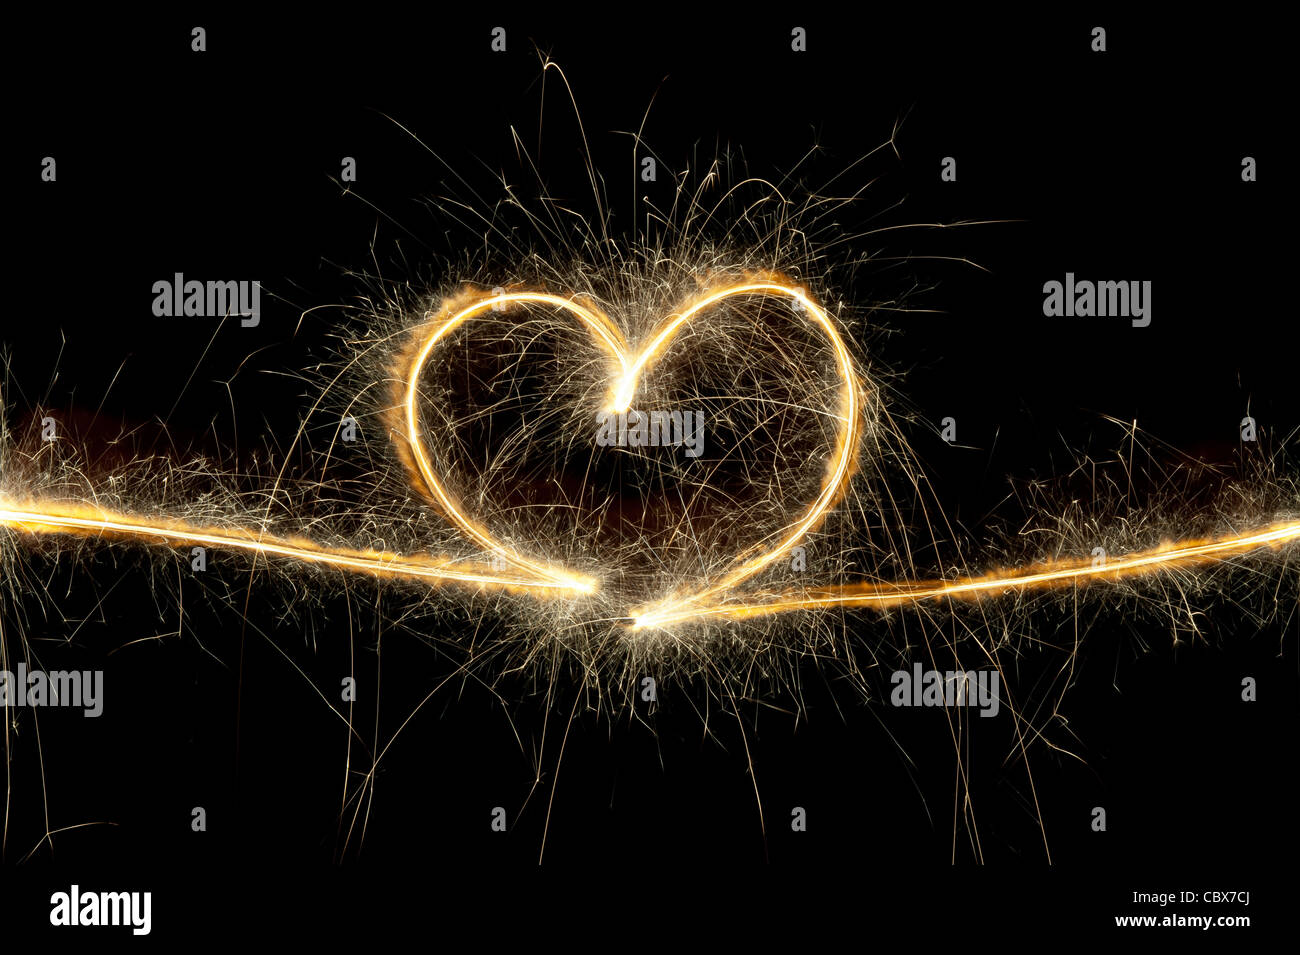 Heart shape made with sparkler at night. Stock Photo